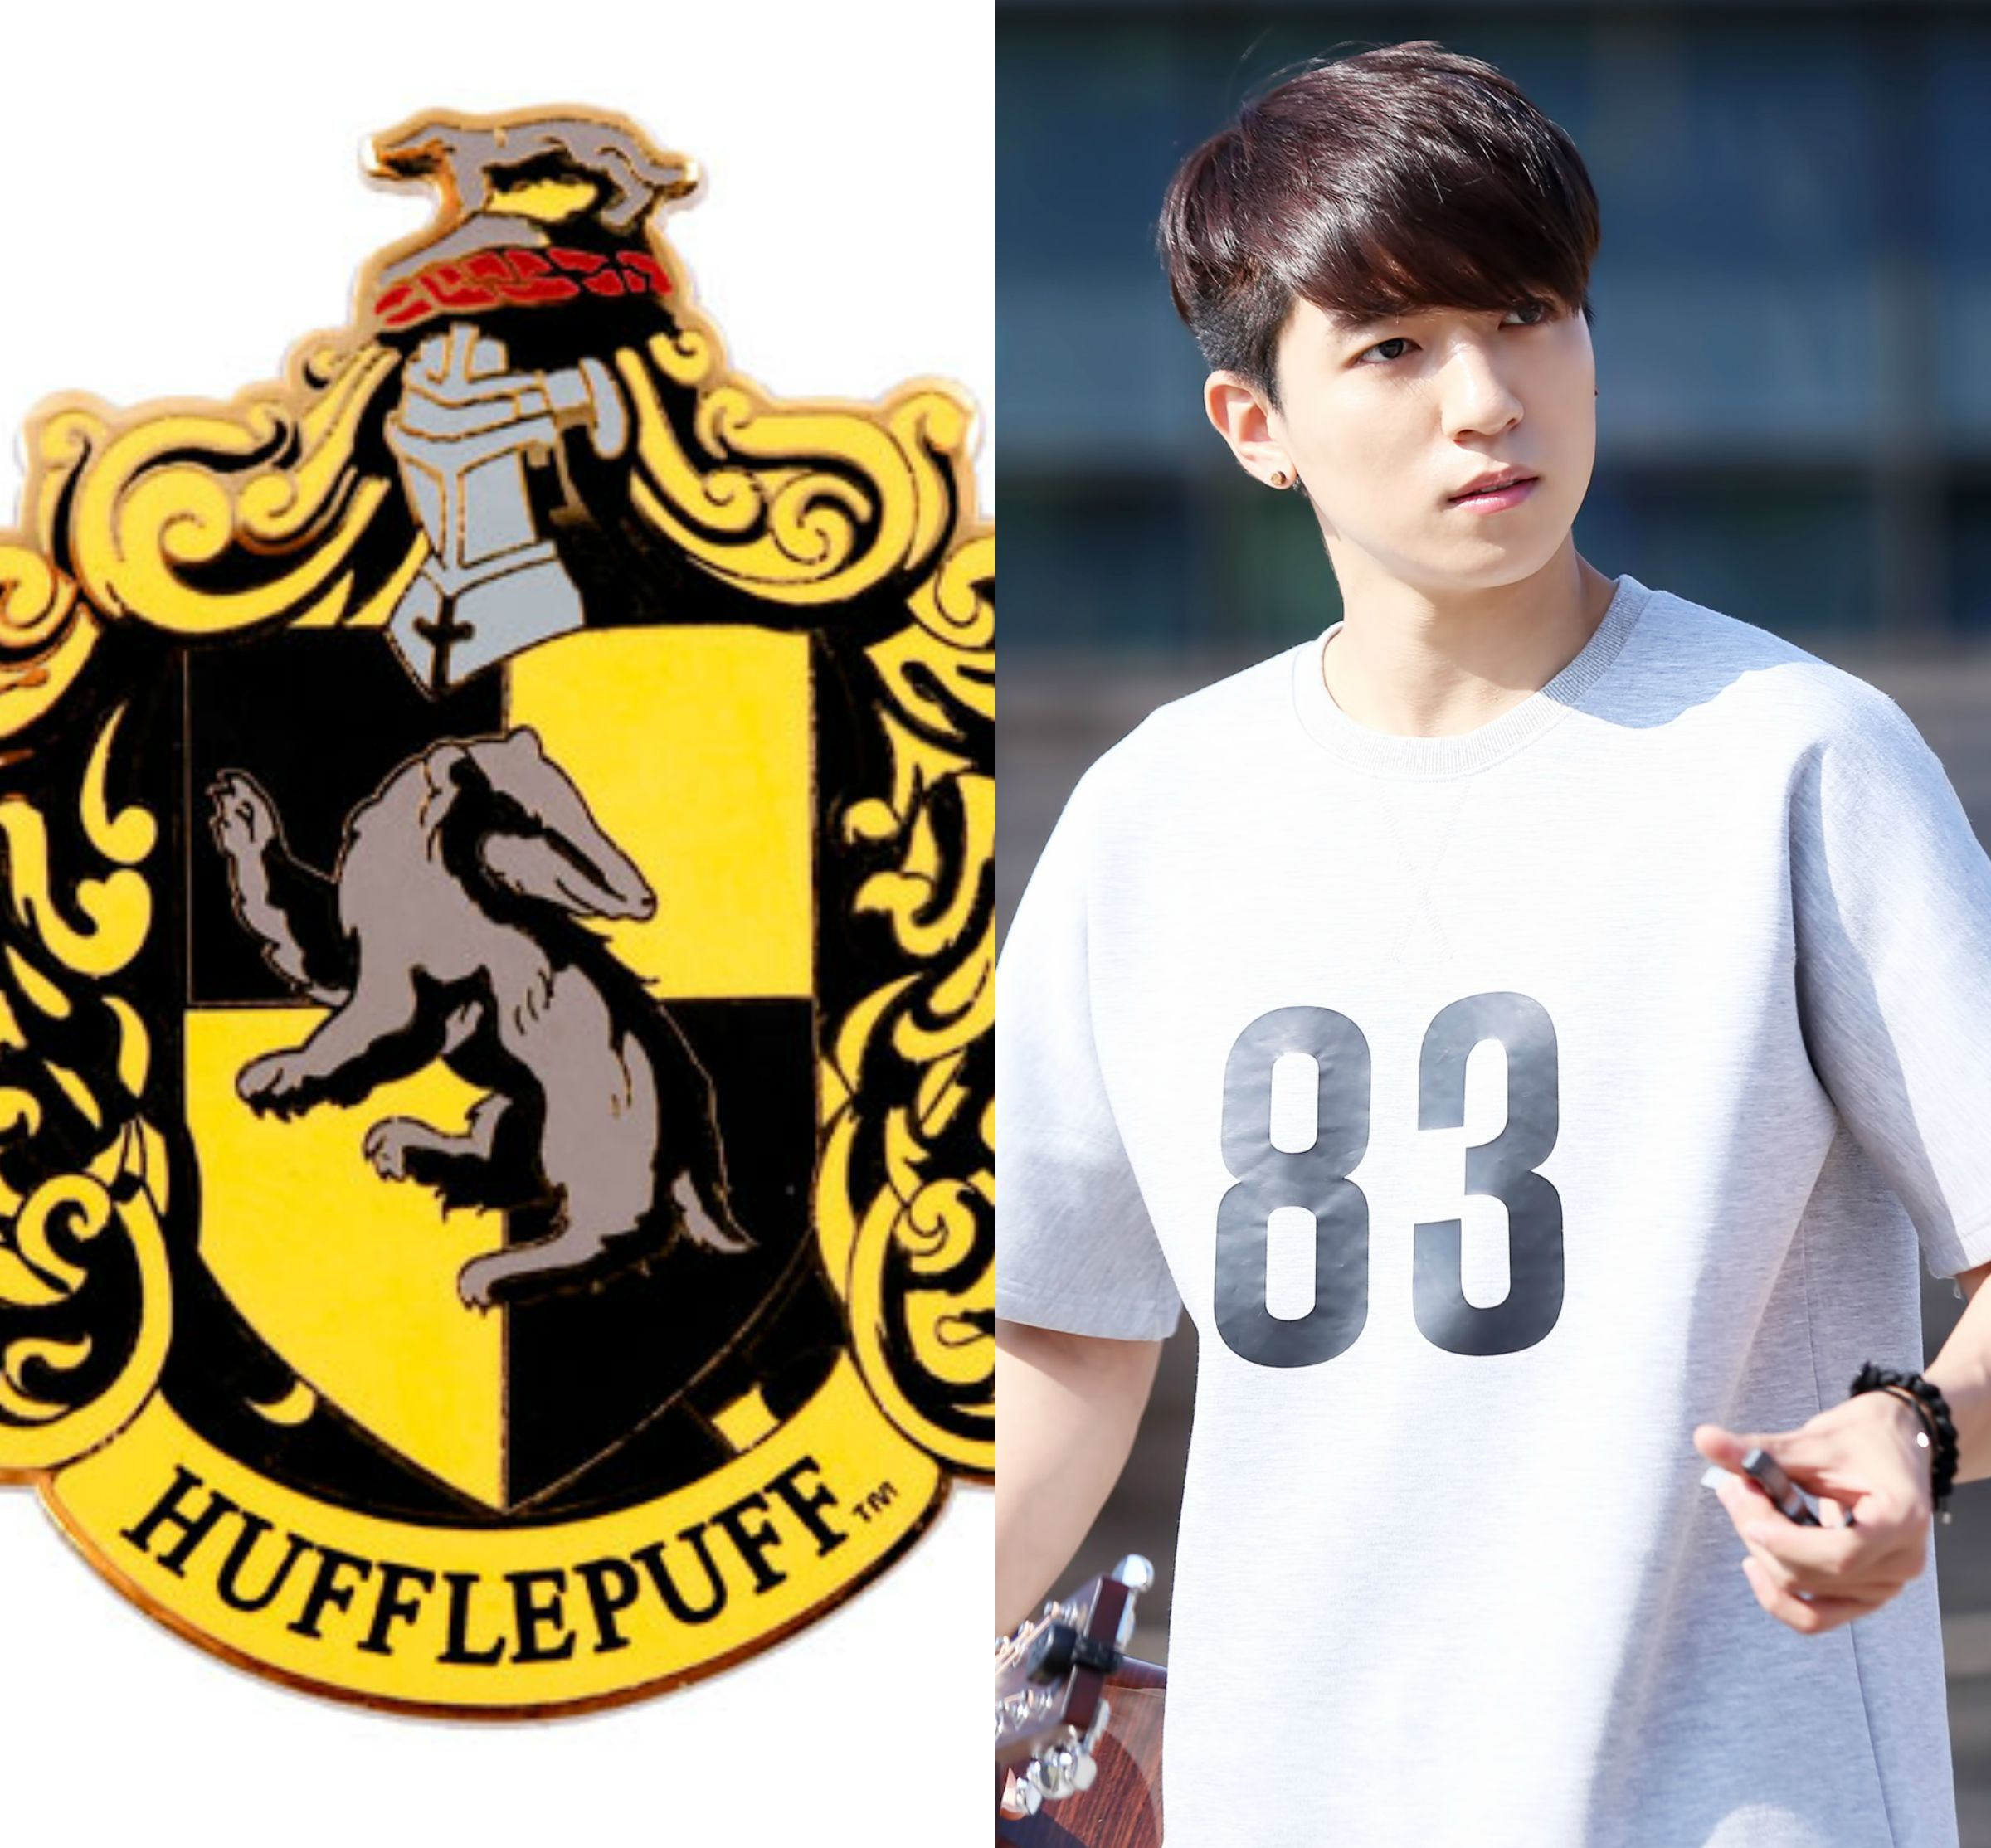 HP&KPOP // Hufflepuff // Sungjin of DAY6